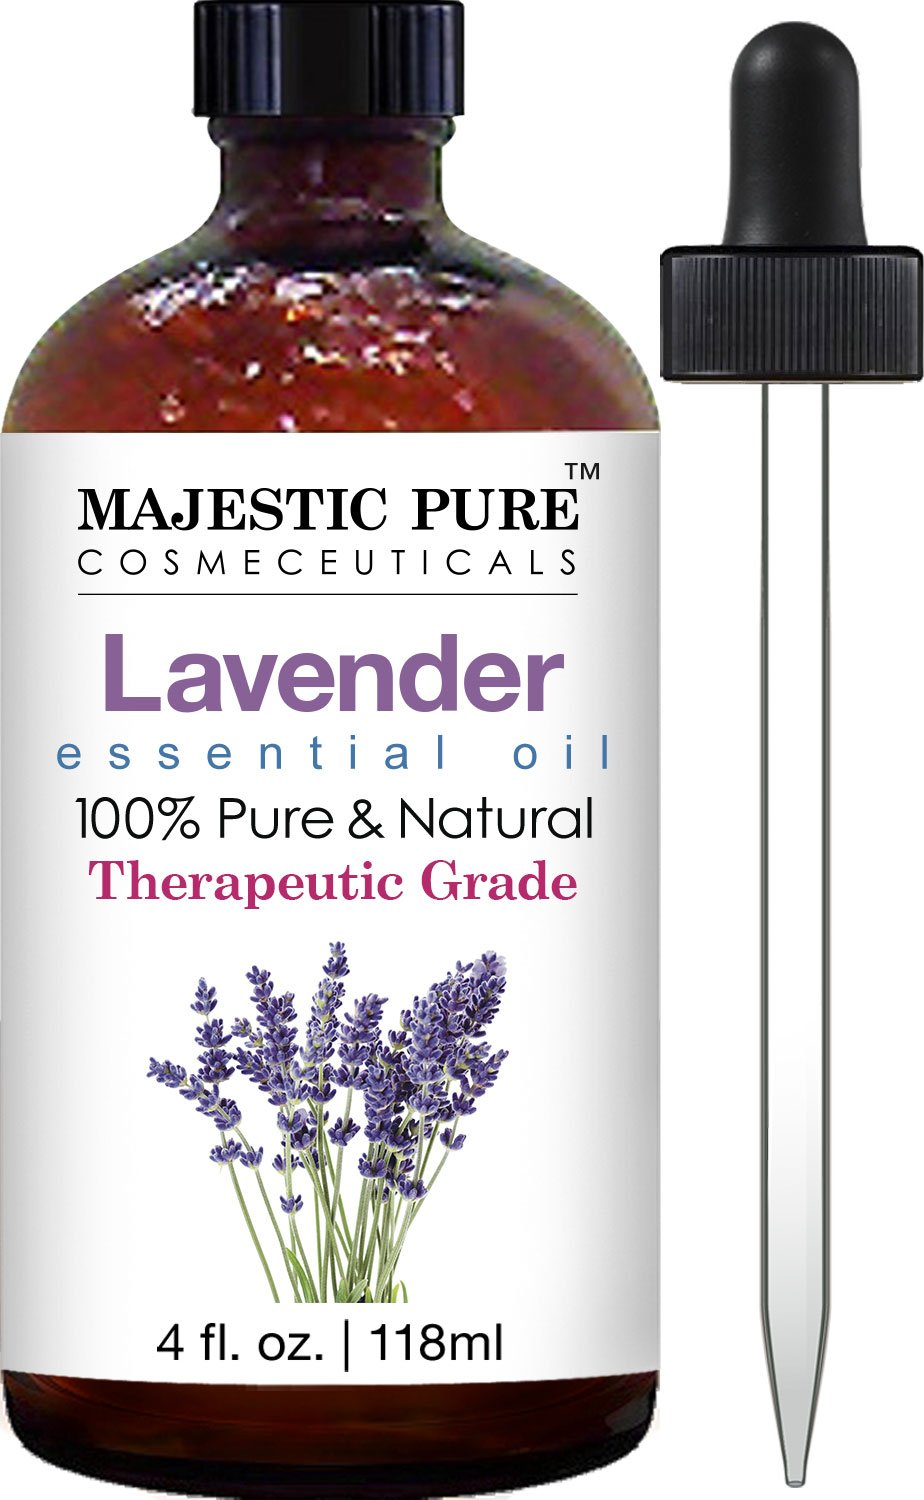 Majestic Pure Lavender Oil, 100% Pure and Natural with Therapeutic Grade, Premium Quality Blend of Lavender Oil, 4 fl. Oz